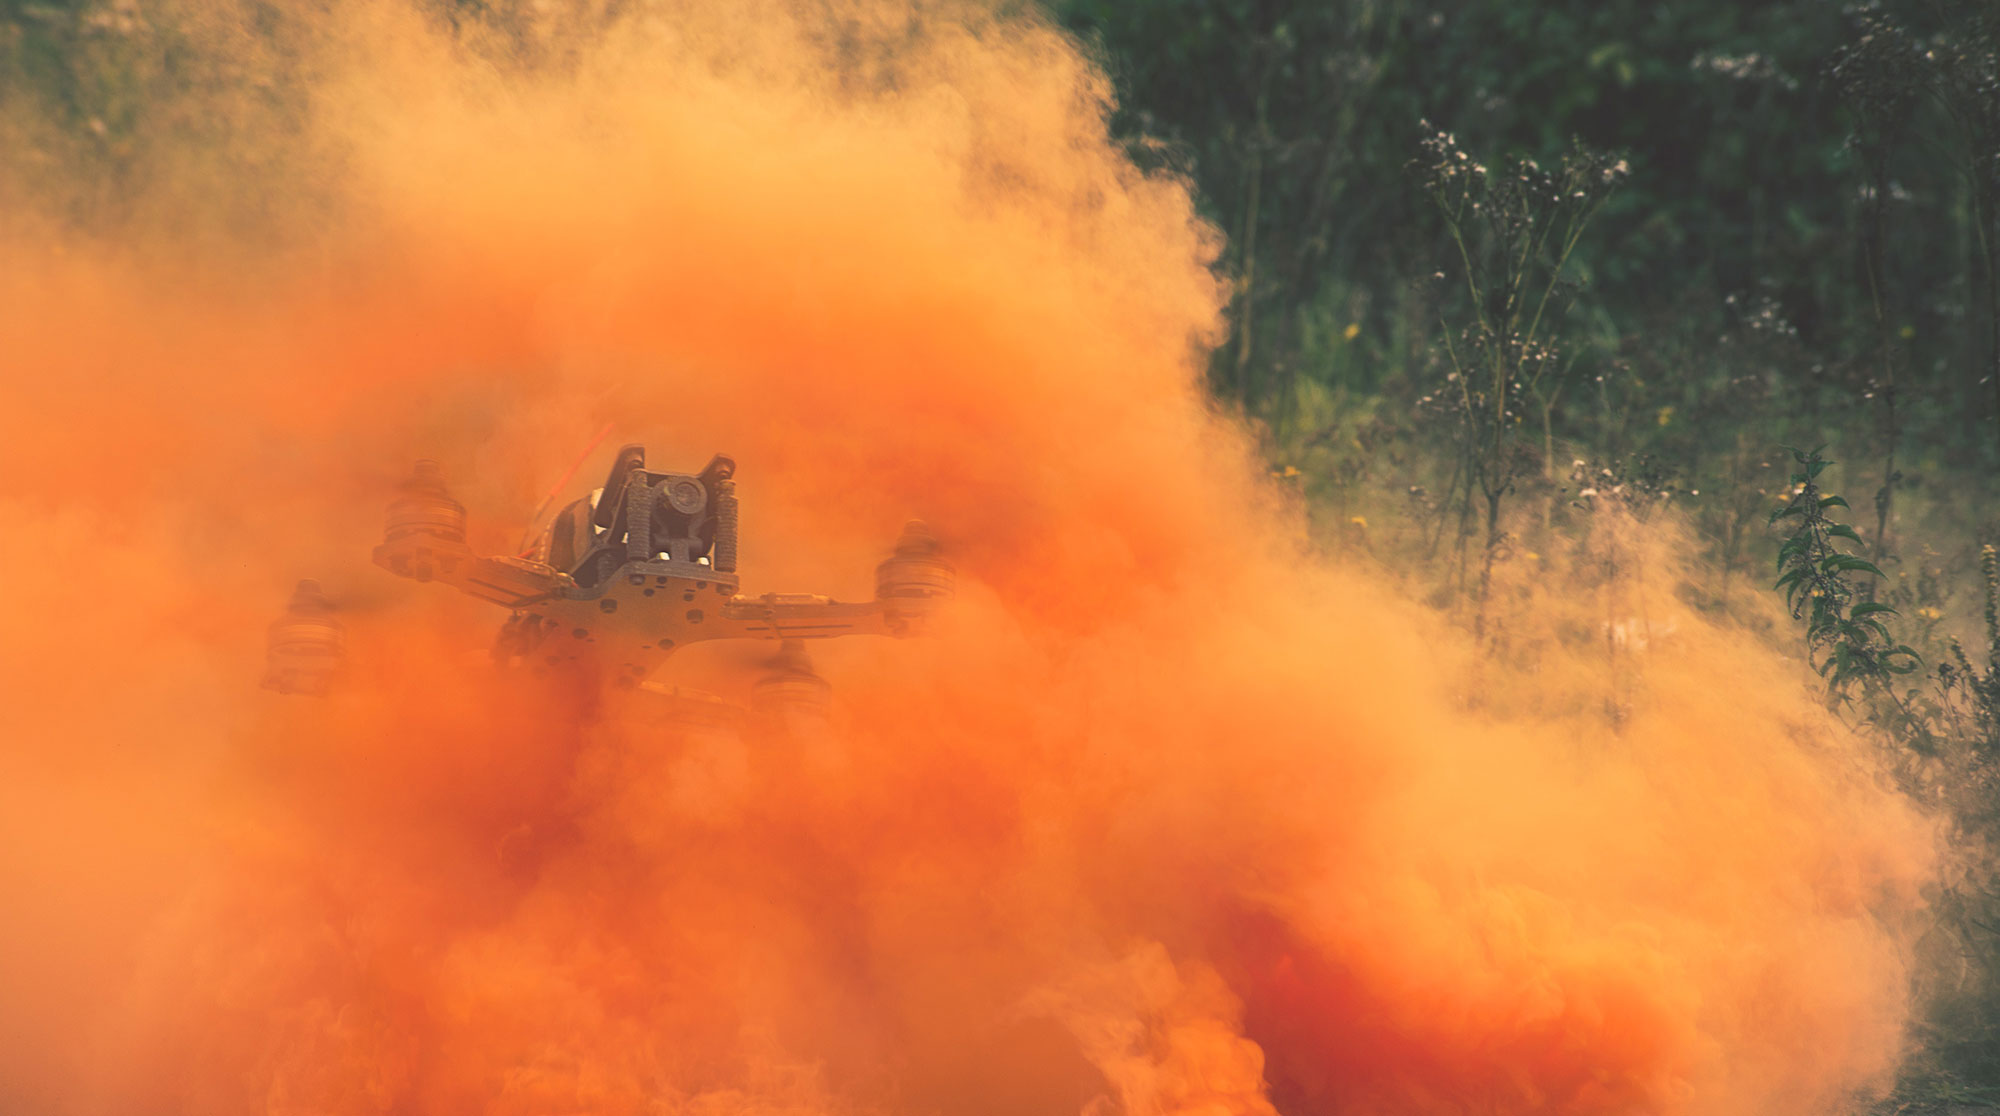 Quadcopter flying through orange smoke